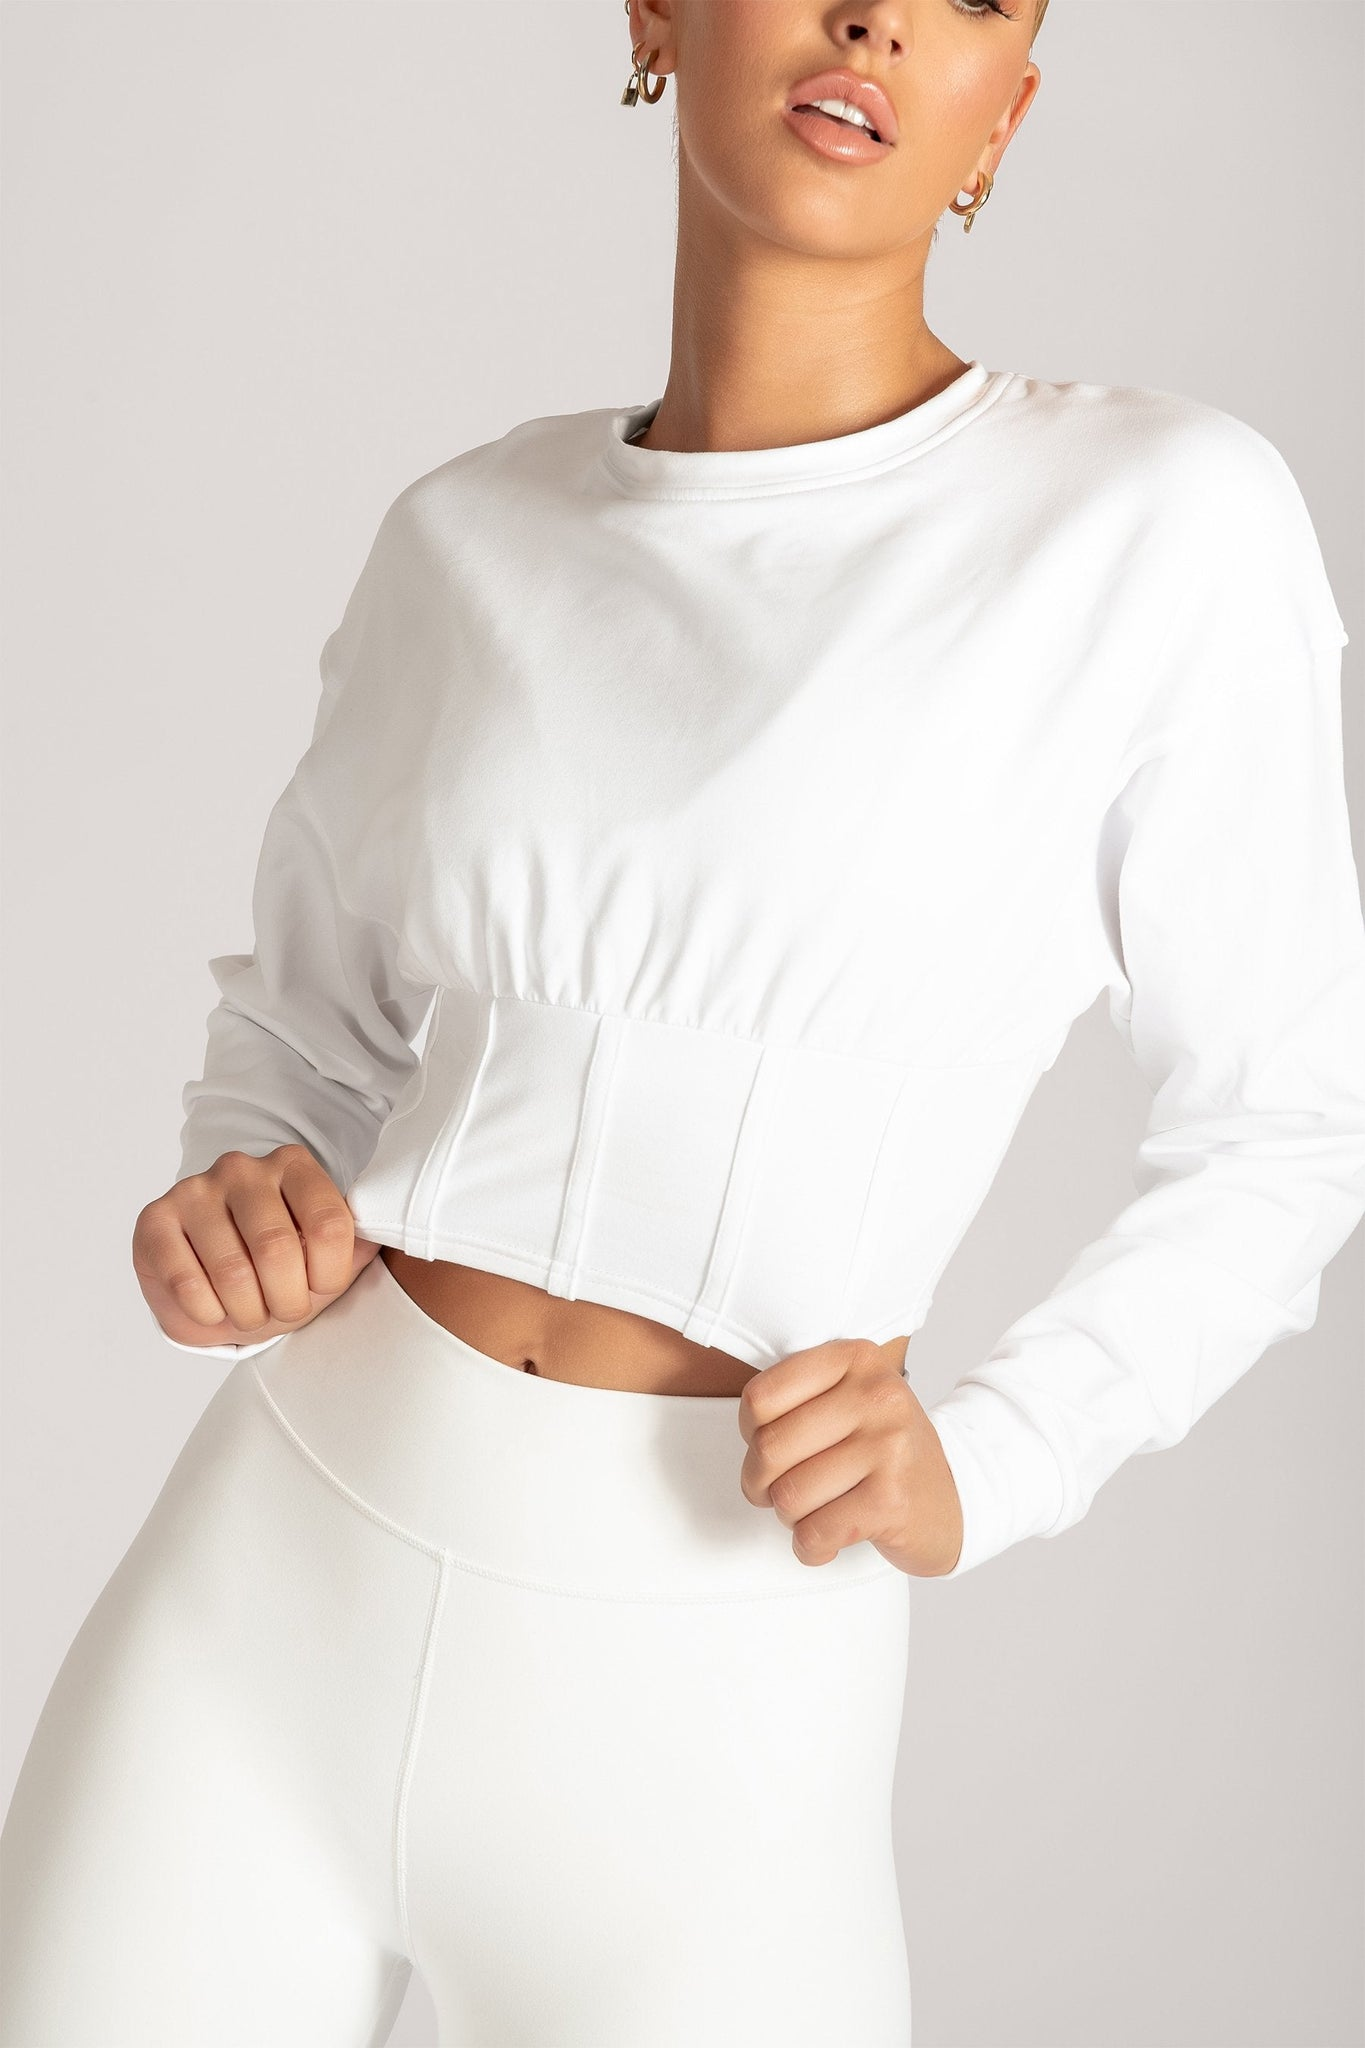 Hestia Panelled Cropped Jumper - White - MESHKI